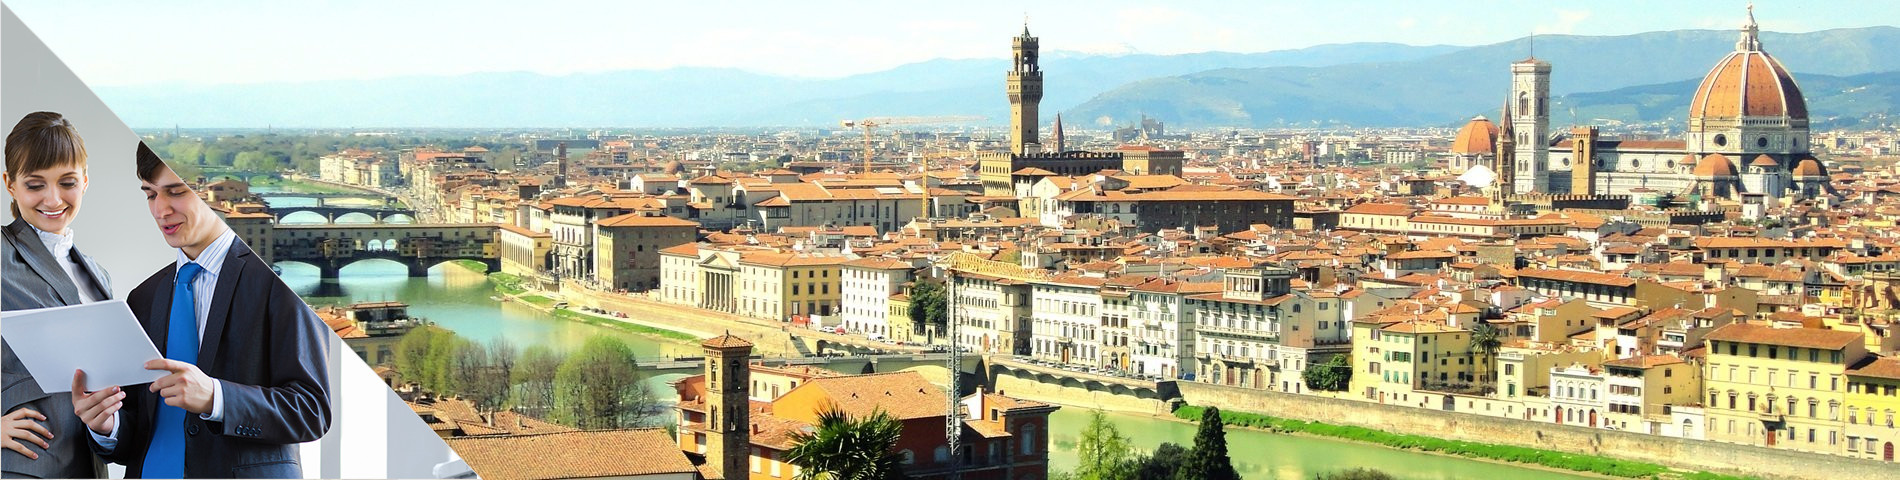 Florence - Business One-to-One